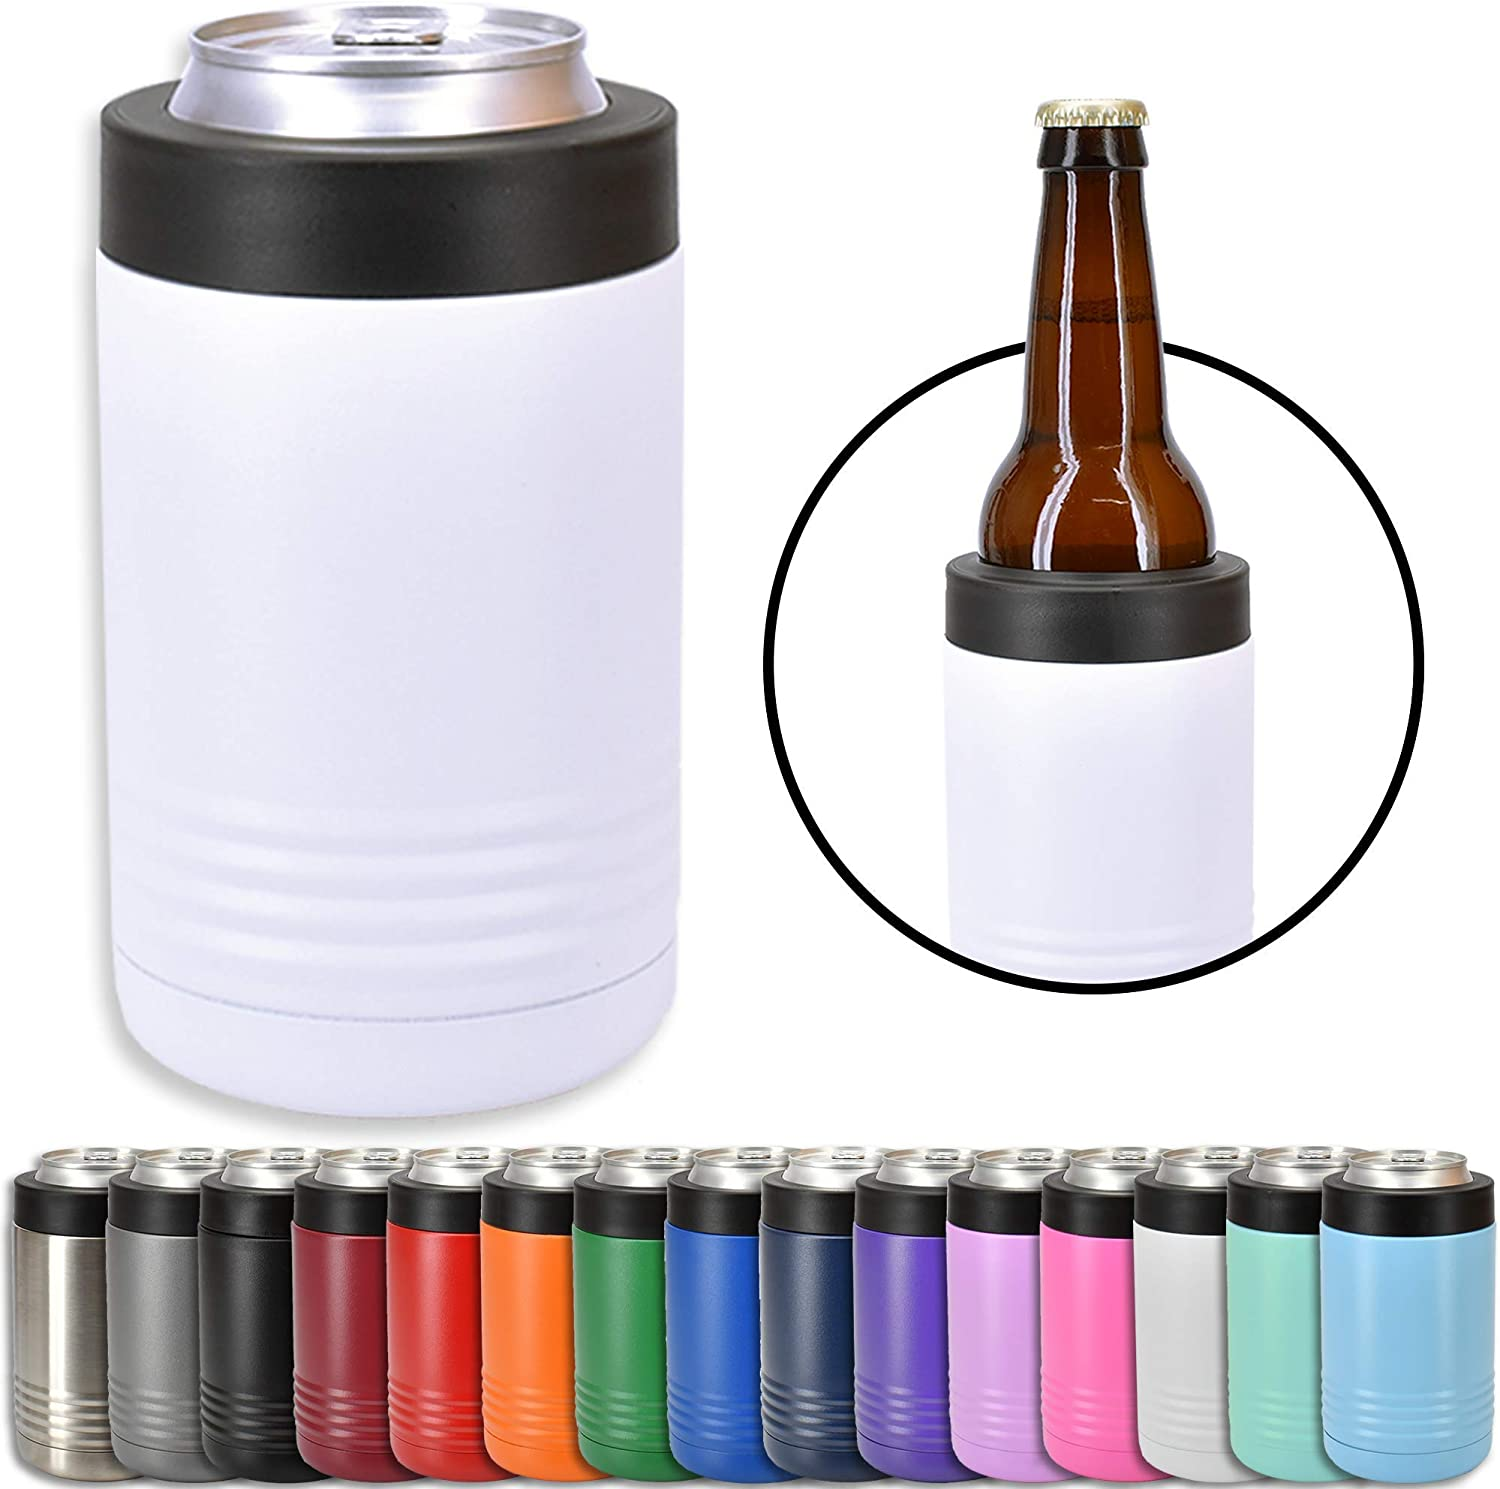 Clear Water Home Goods - 12 oz Stainless Steel Double Wall Vacuum Insulated Can or Bottle Cooler Keeps Beverage Cold for Hours - Powder Coated White